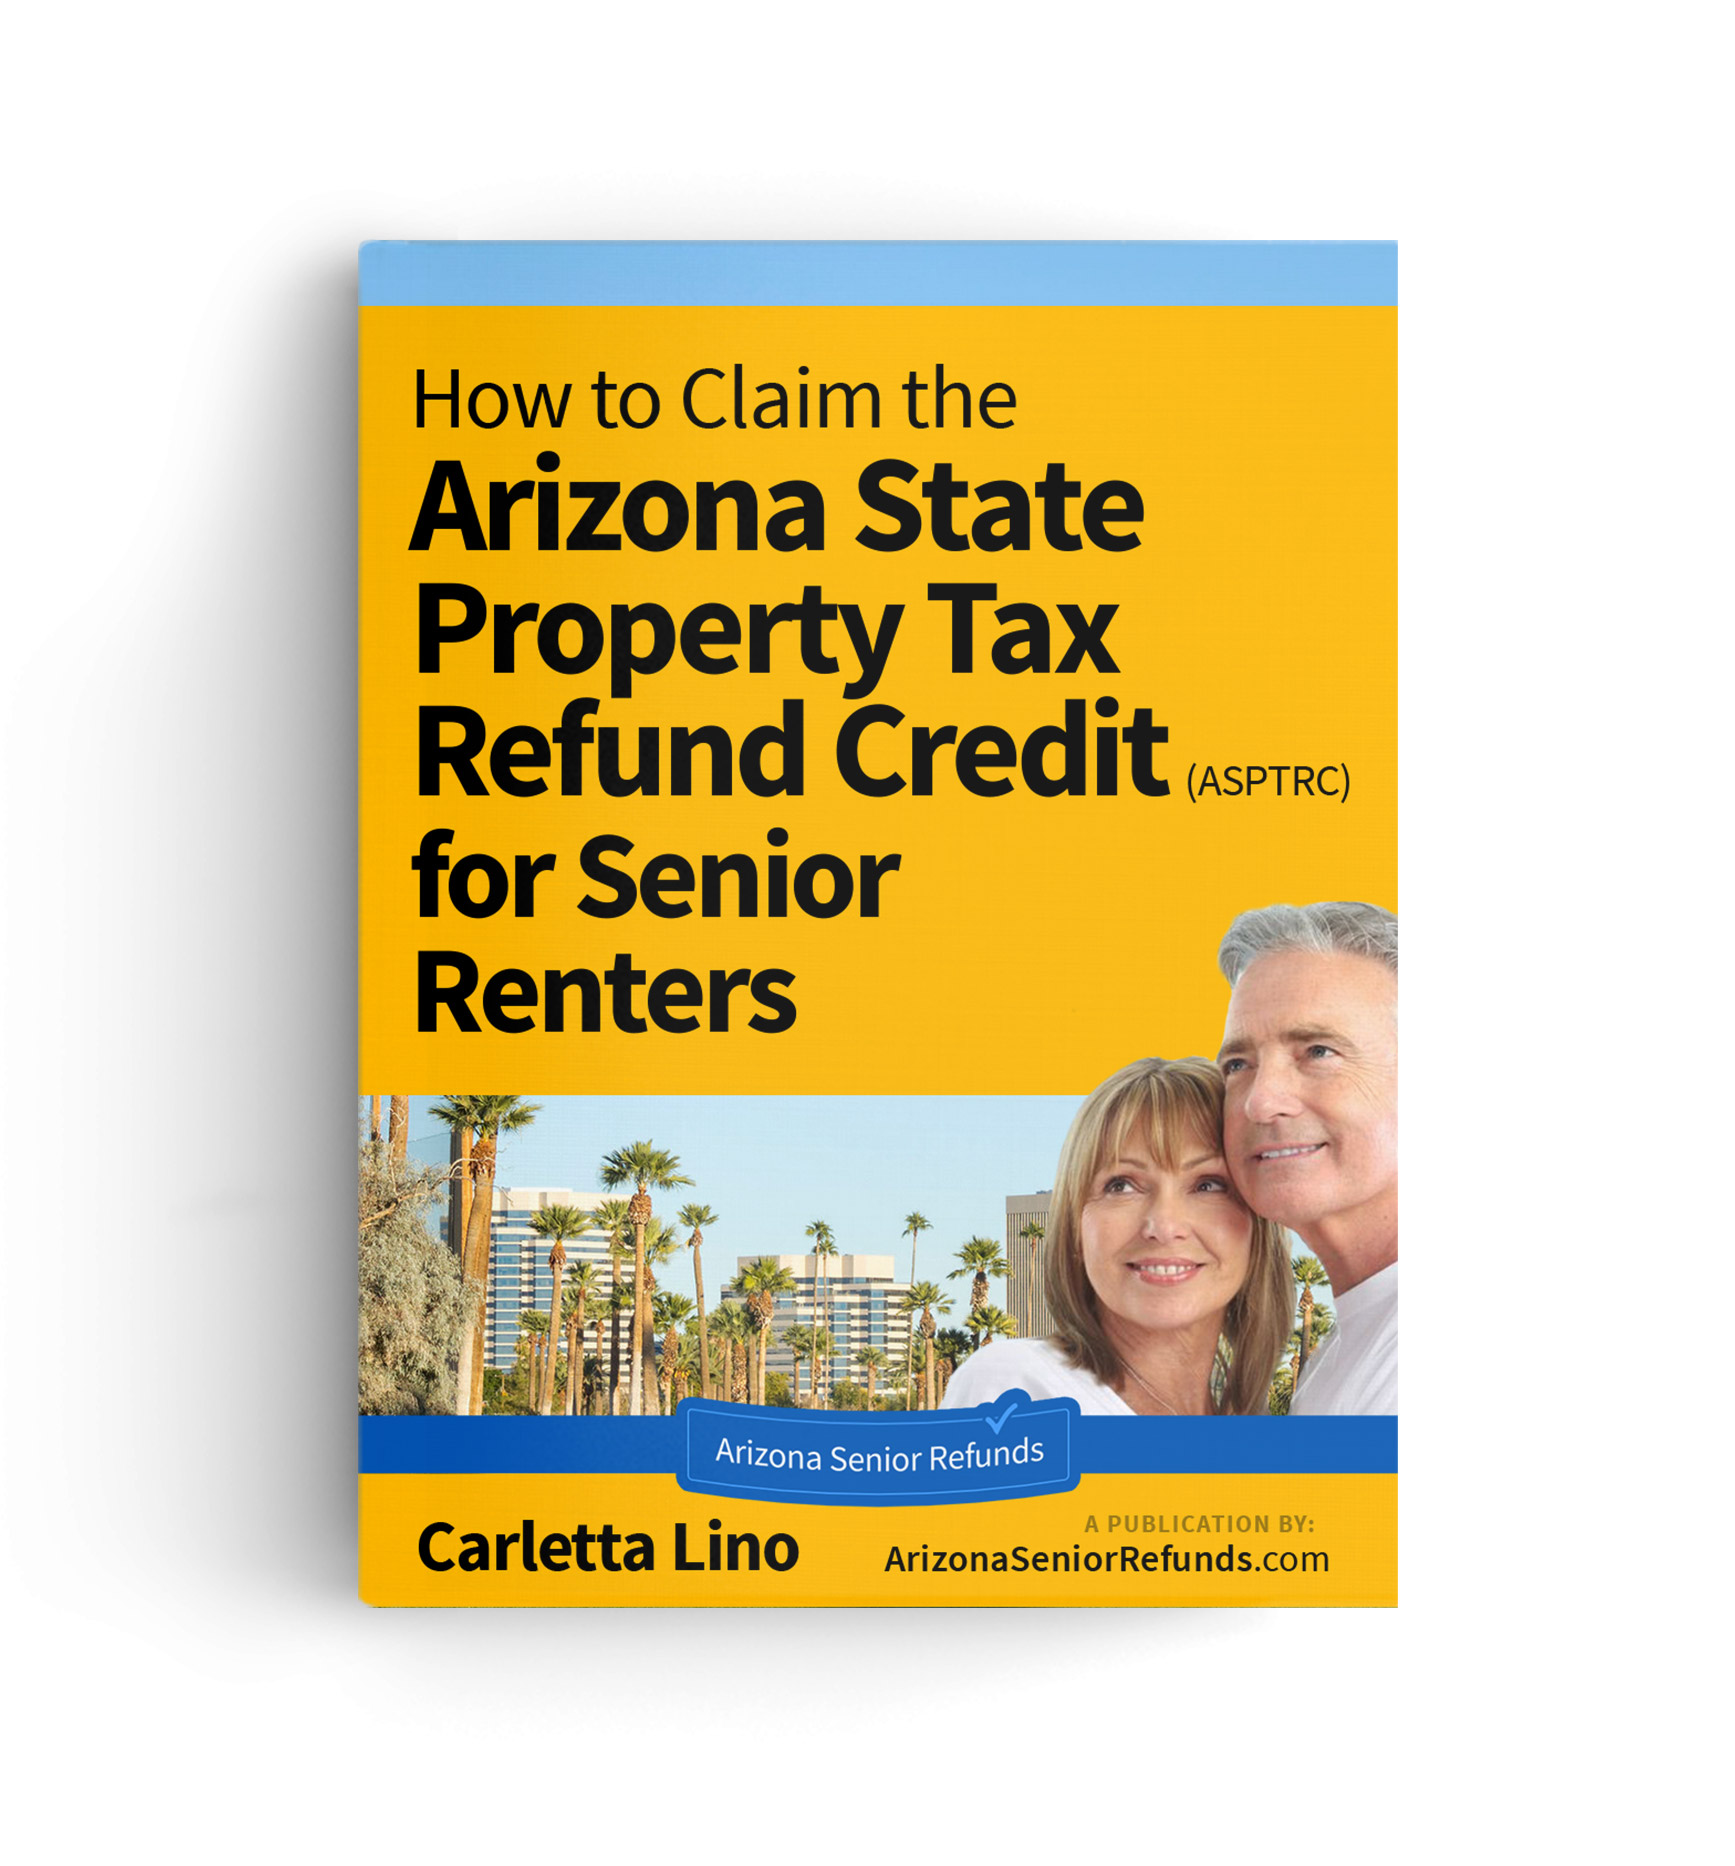 How to Claim the Arizona State Refund Credit for Senior Renters by Carletta Lino